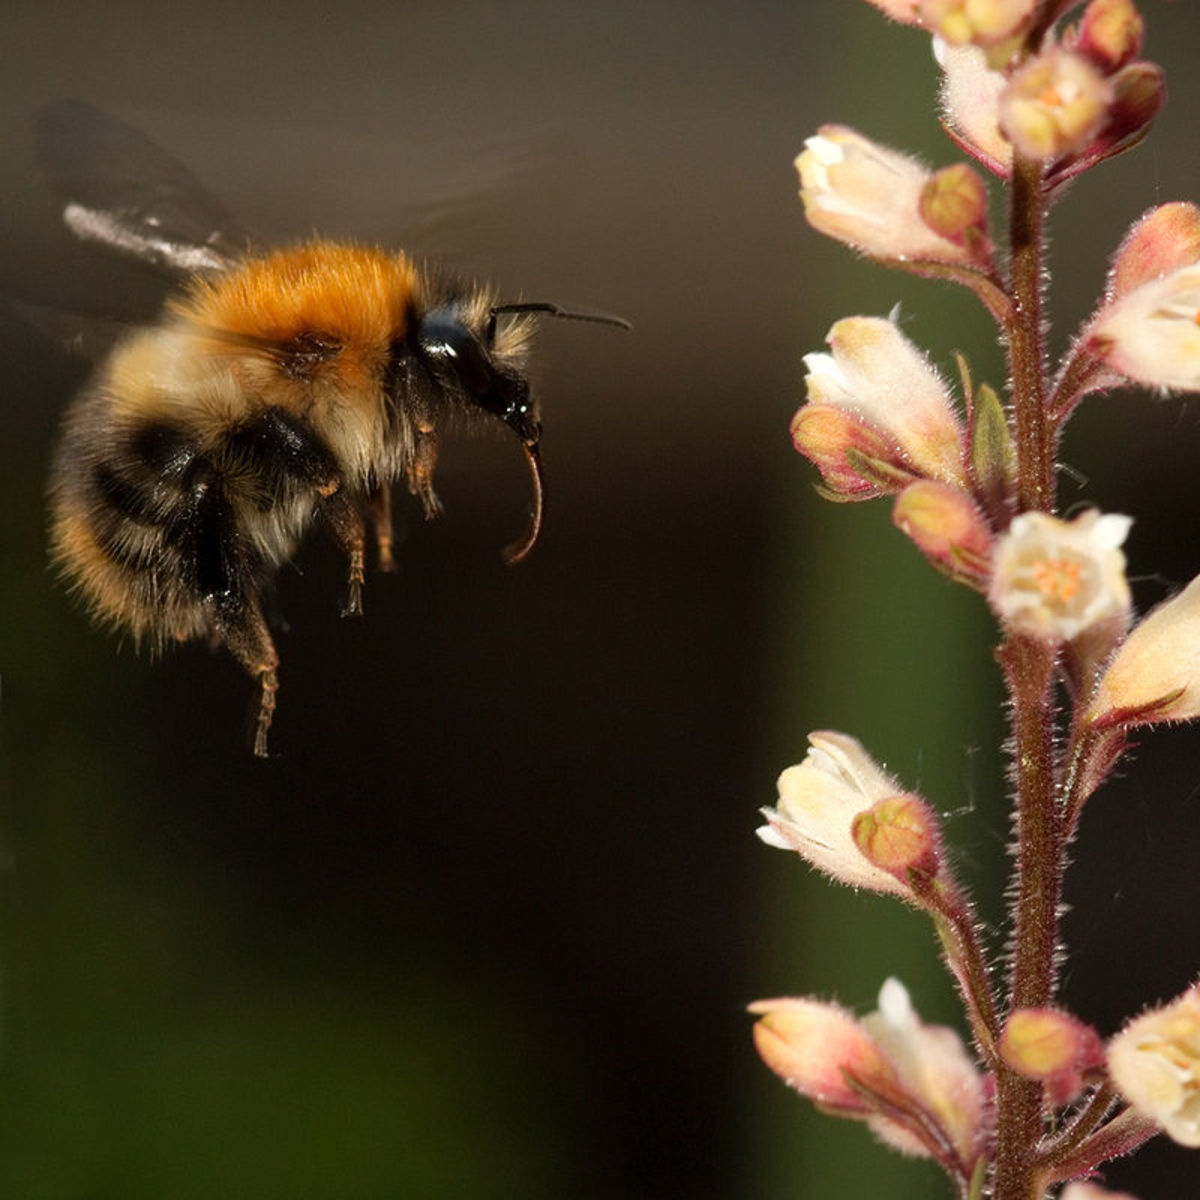 Common bumblebee.